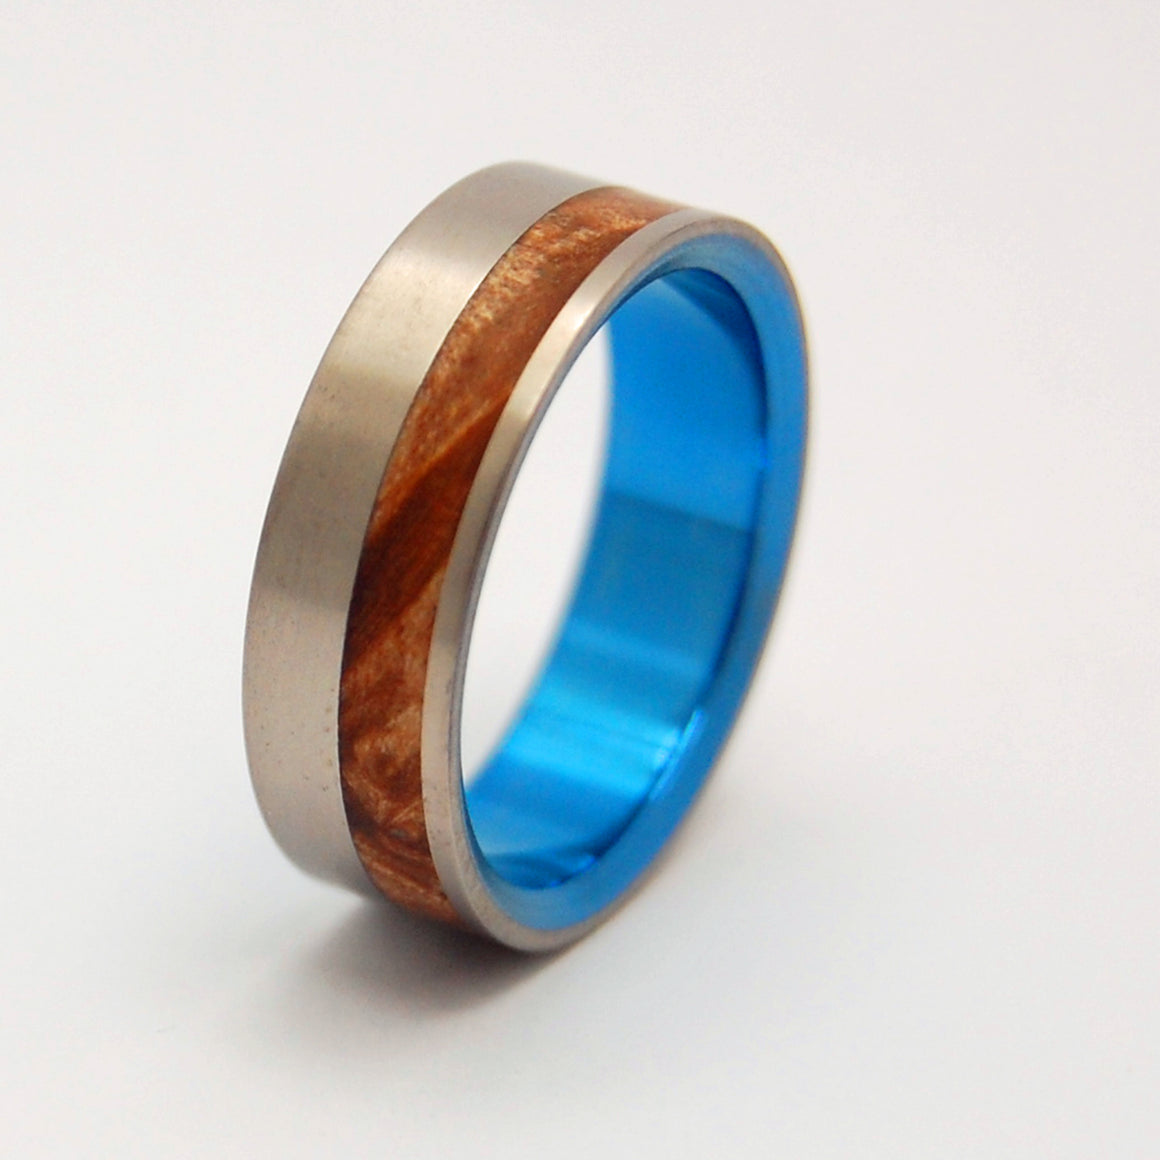 Blue Faun | Handcrafted Women's Wedding Rings - Minter and Richter Designs